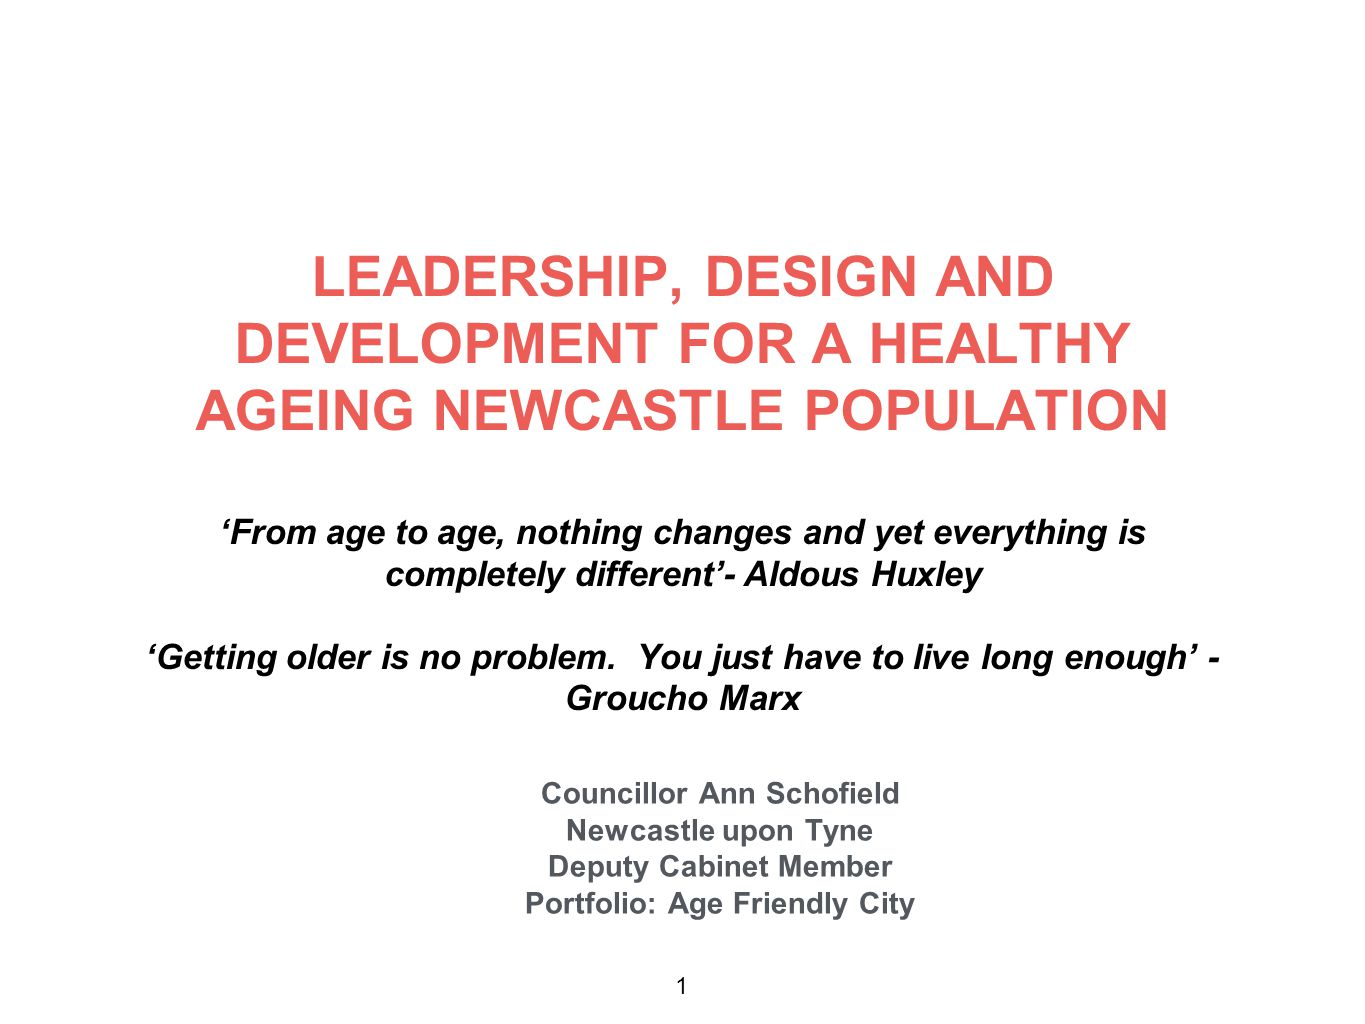 LEADERSHIP, DESIGN AND DEVELOPMENT FOR A HEALTHY AGEING NEWCASTLE POPULATION 'From age to age, nothing changes and yet everything is completely different'- Aldous Huxley 'Getting older is no problem.